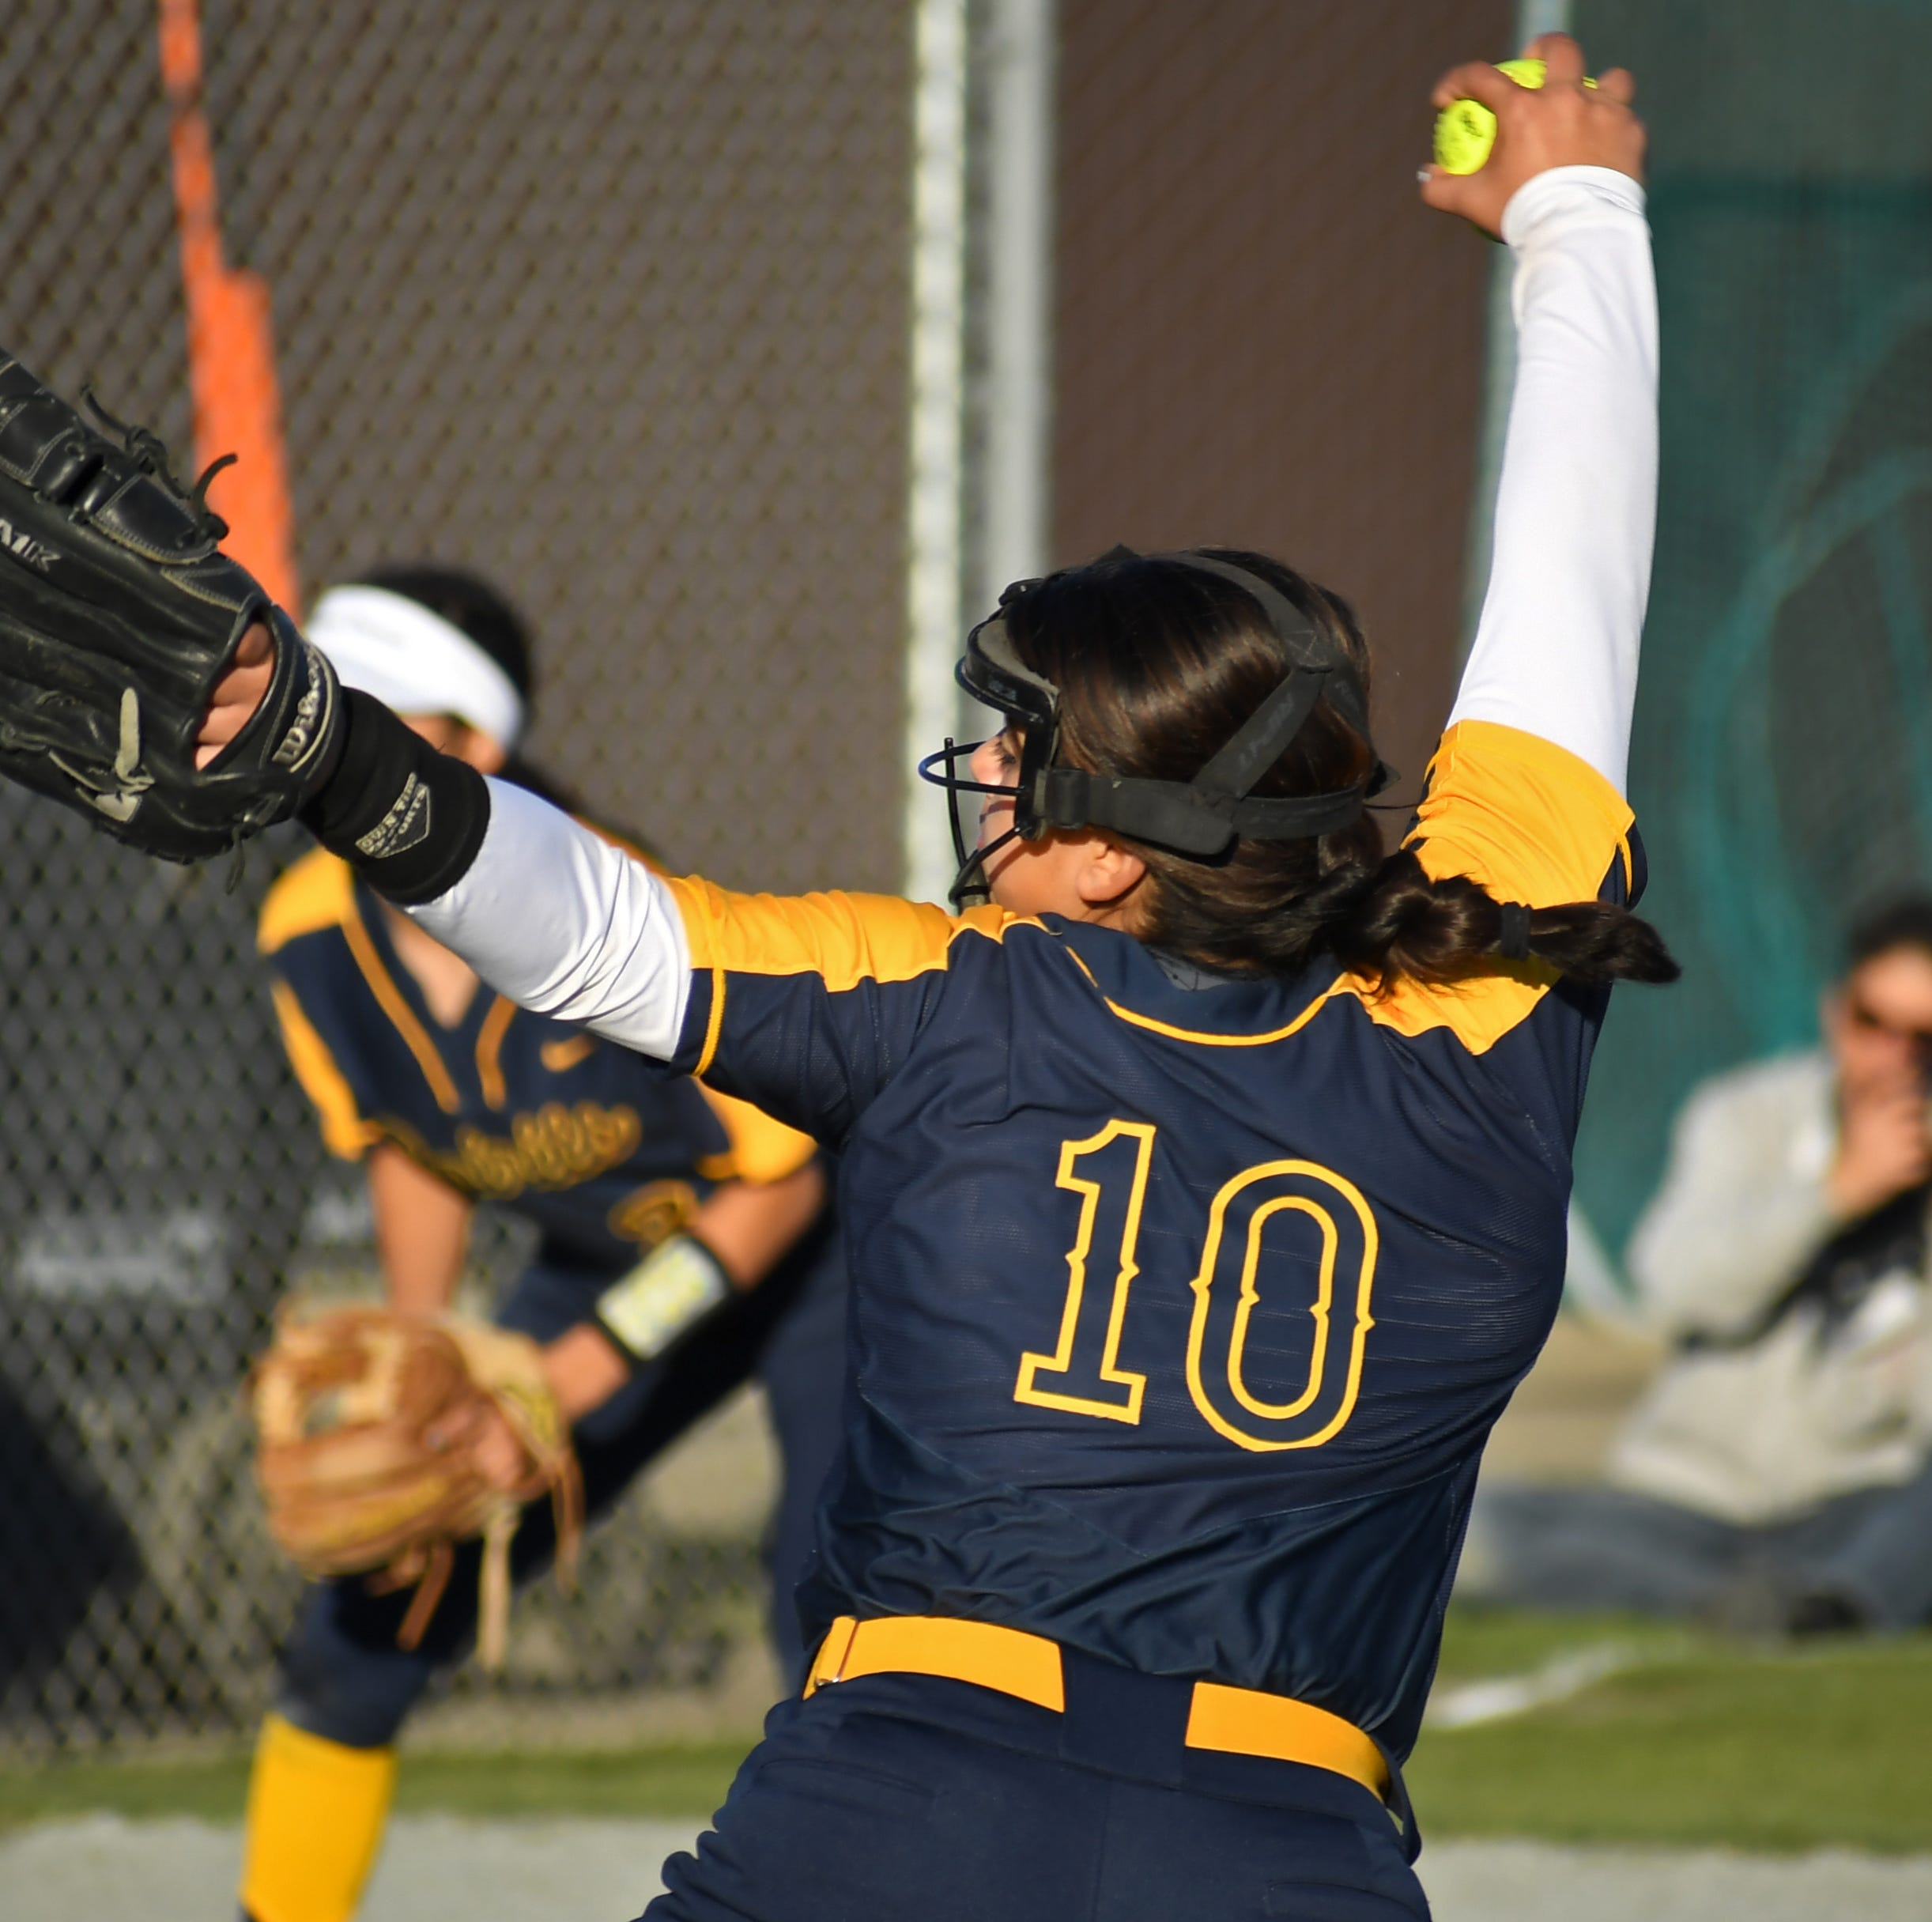 Meet the new faces pacing Notre Dame softball to its best start in years